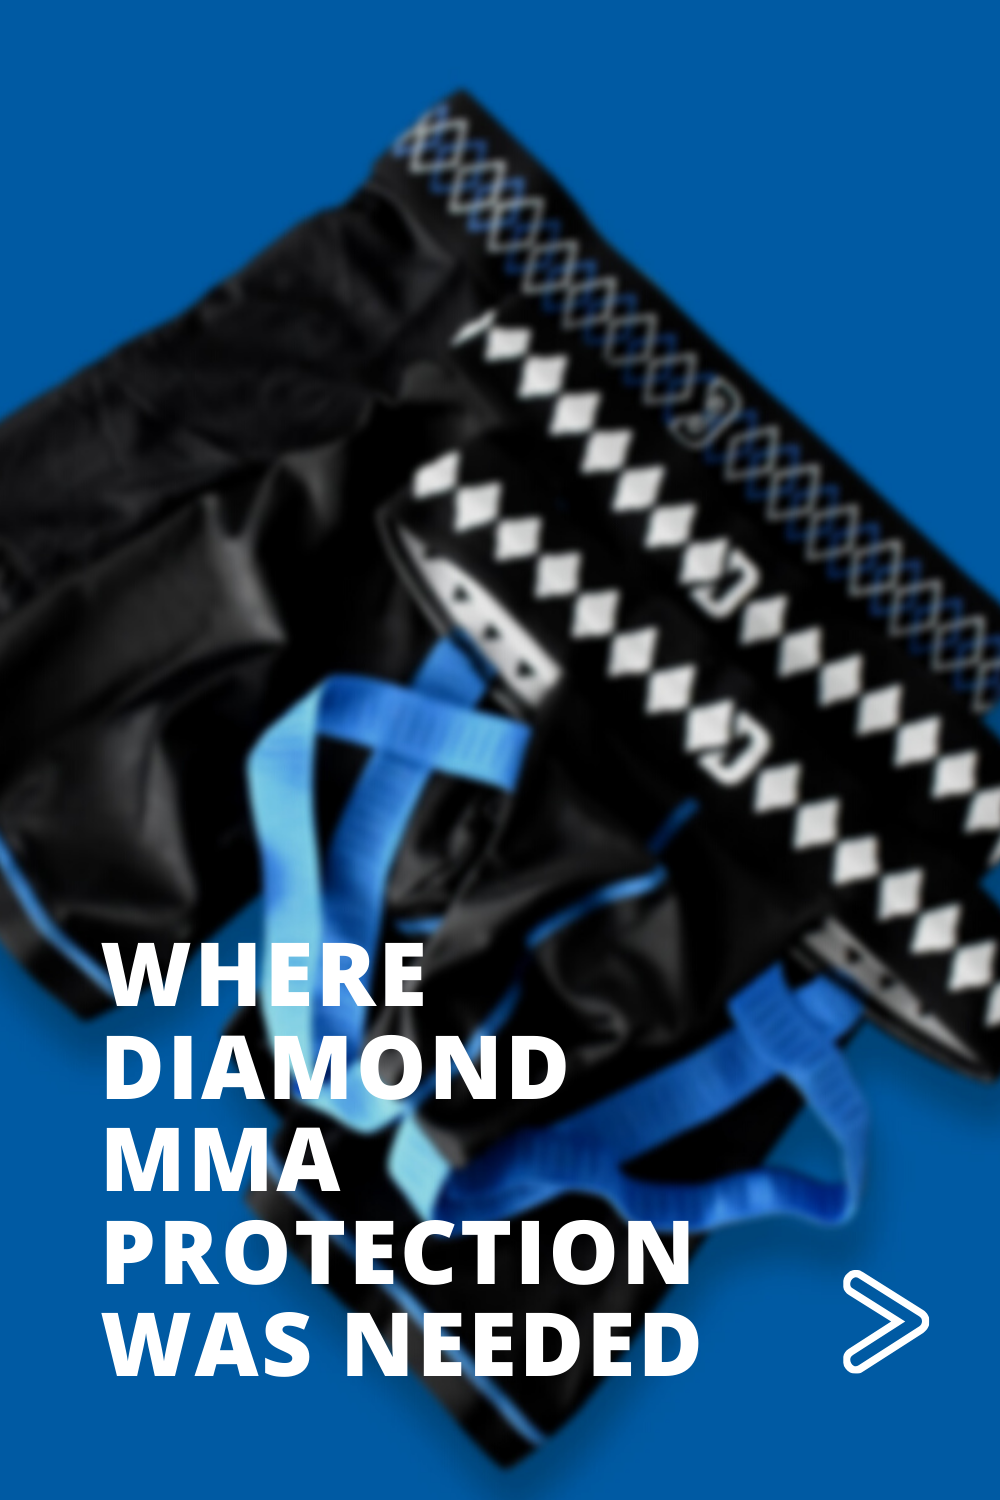 Where Diamond Protection Was Needed